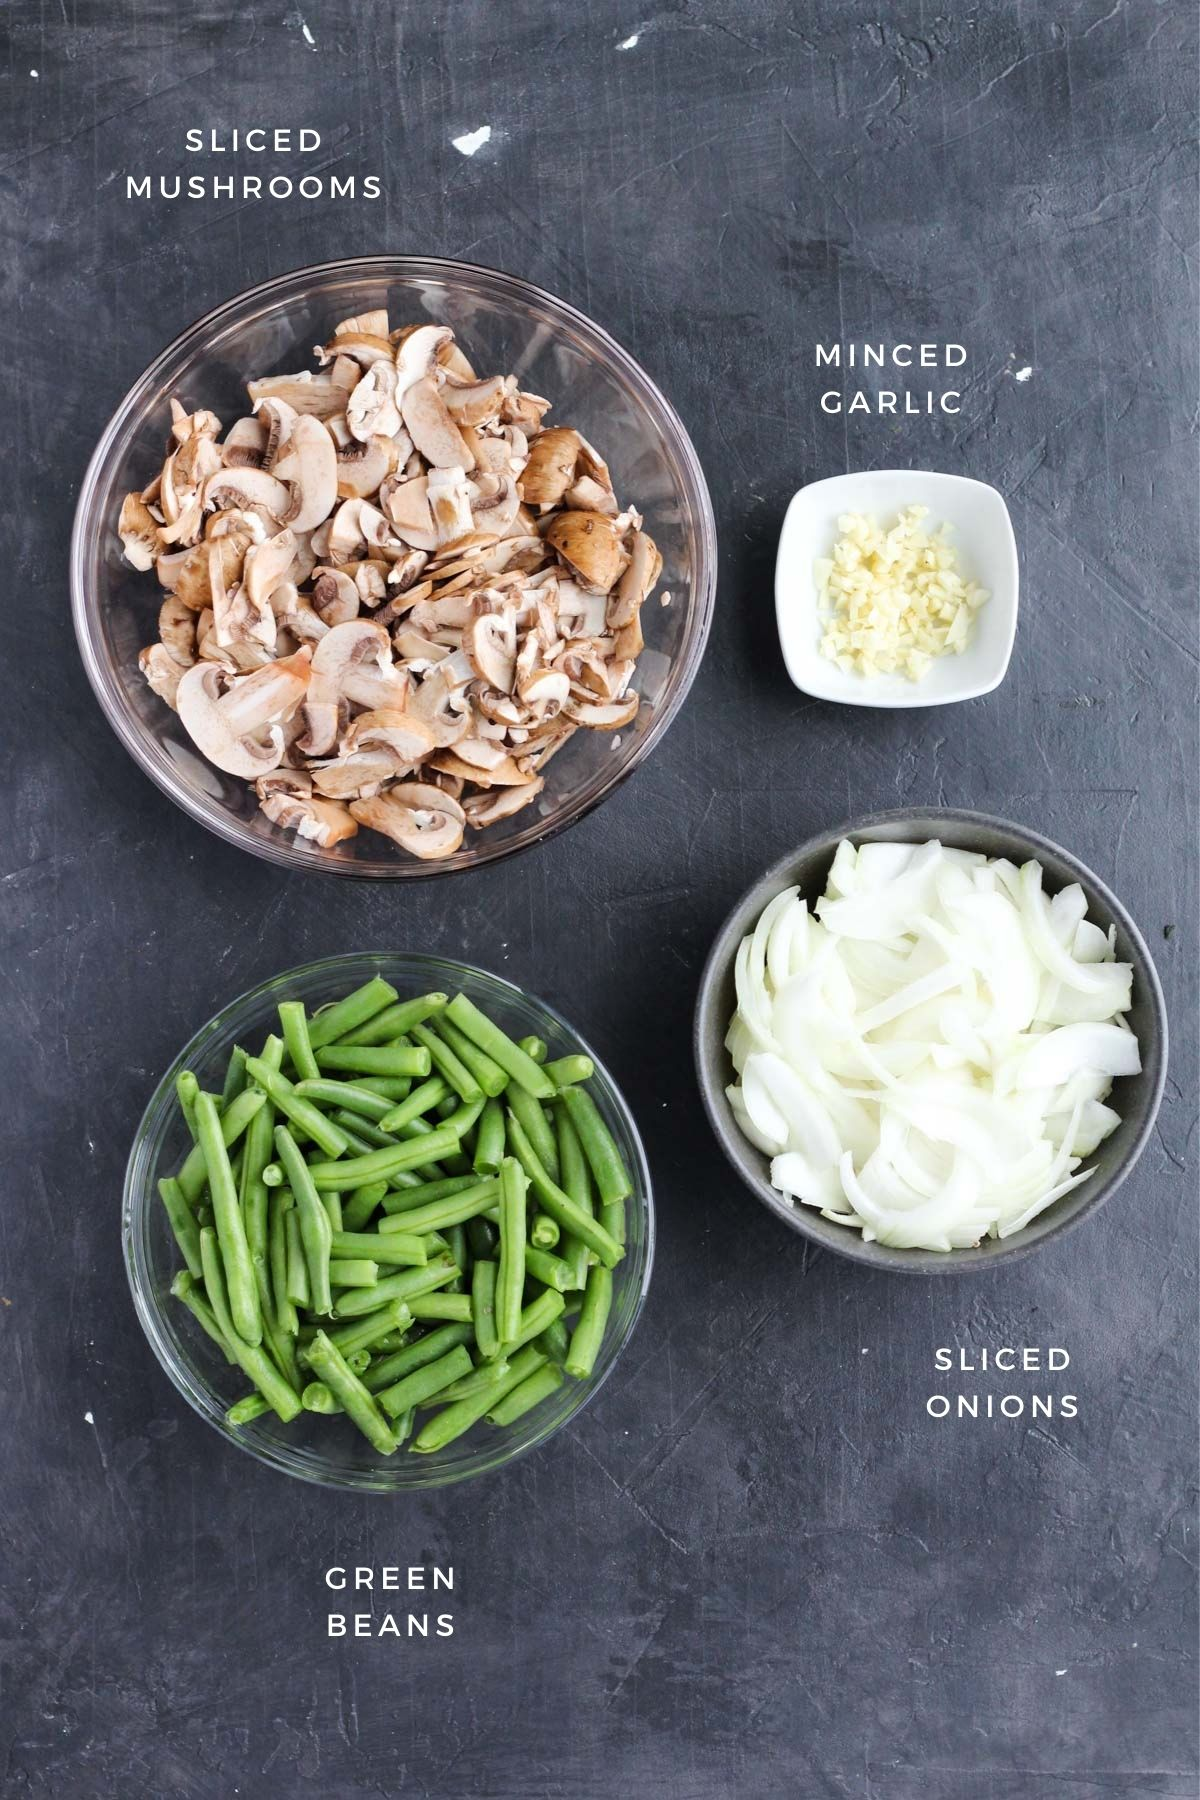 Vegetables prepared and measured out into separate bowls.